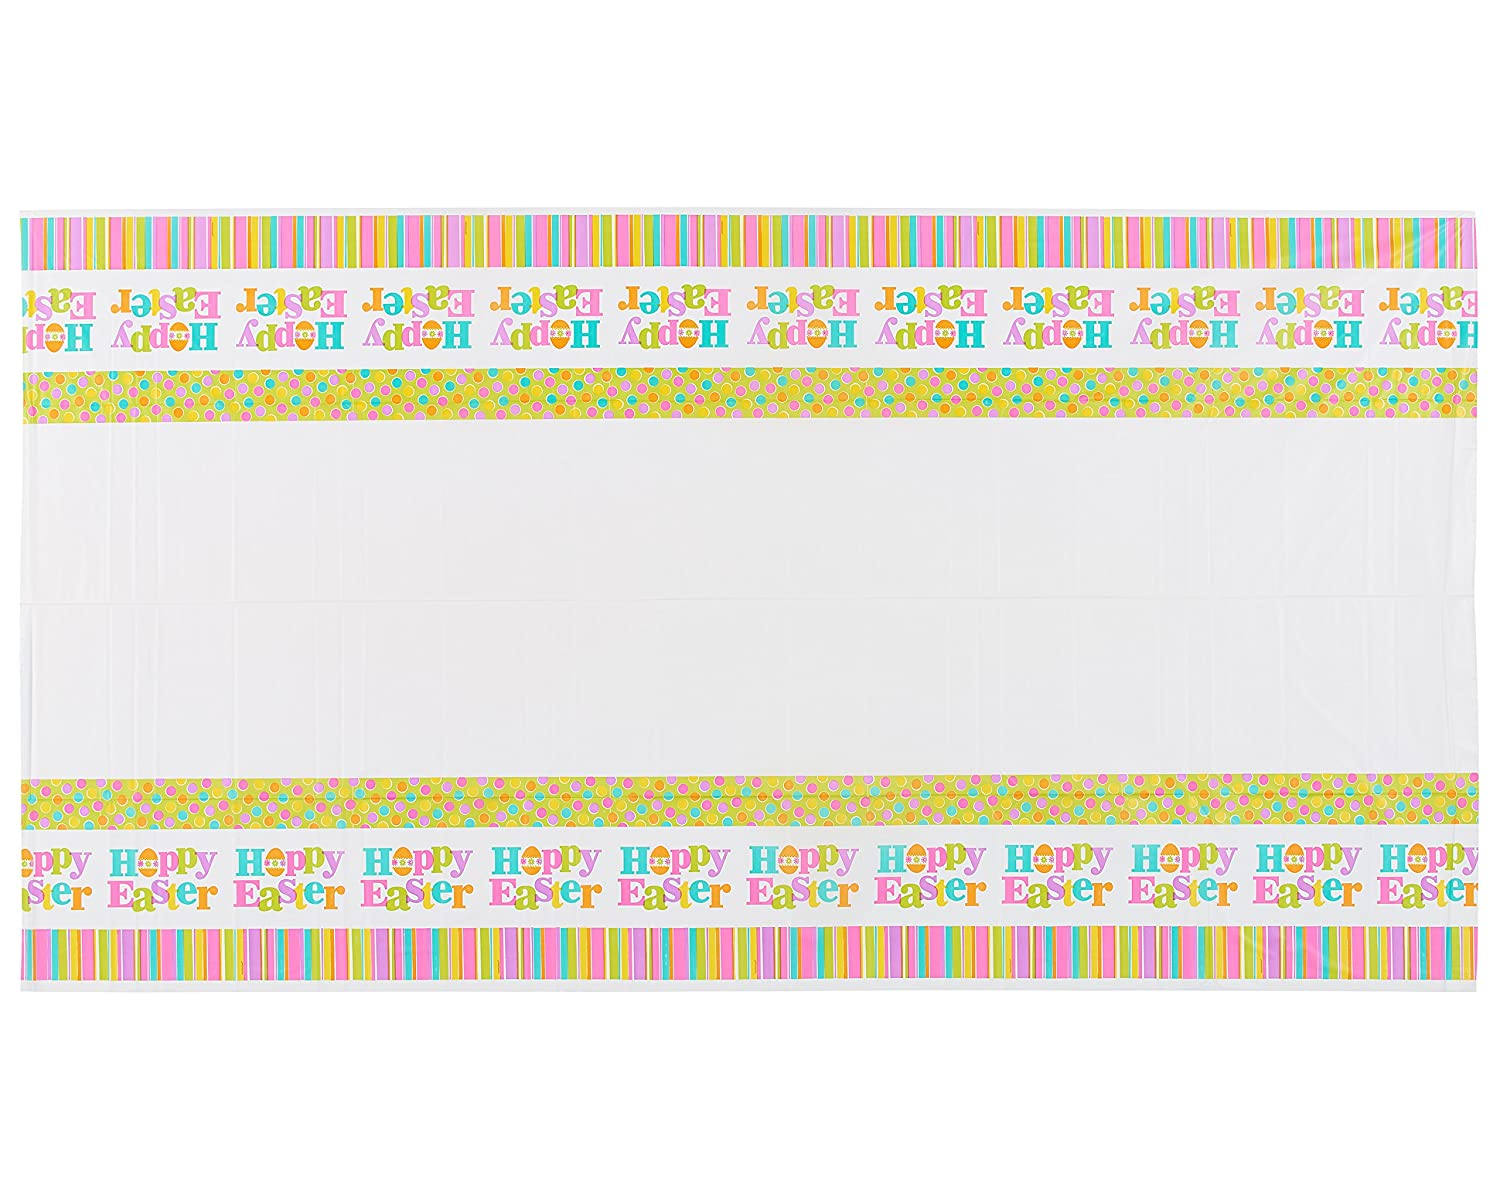 American Greetings Hoppy Easter Plastic Table Cover, 54' x 102', Party Supplies, Multicolored